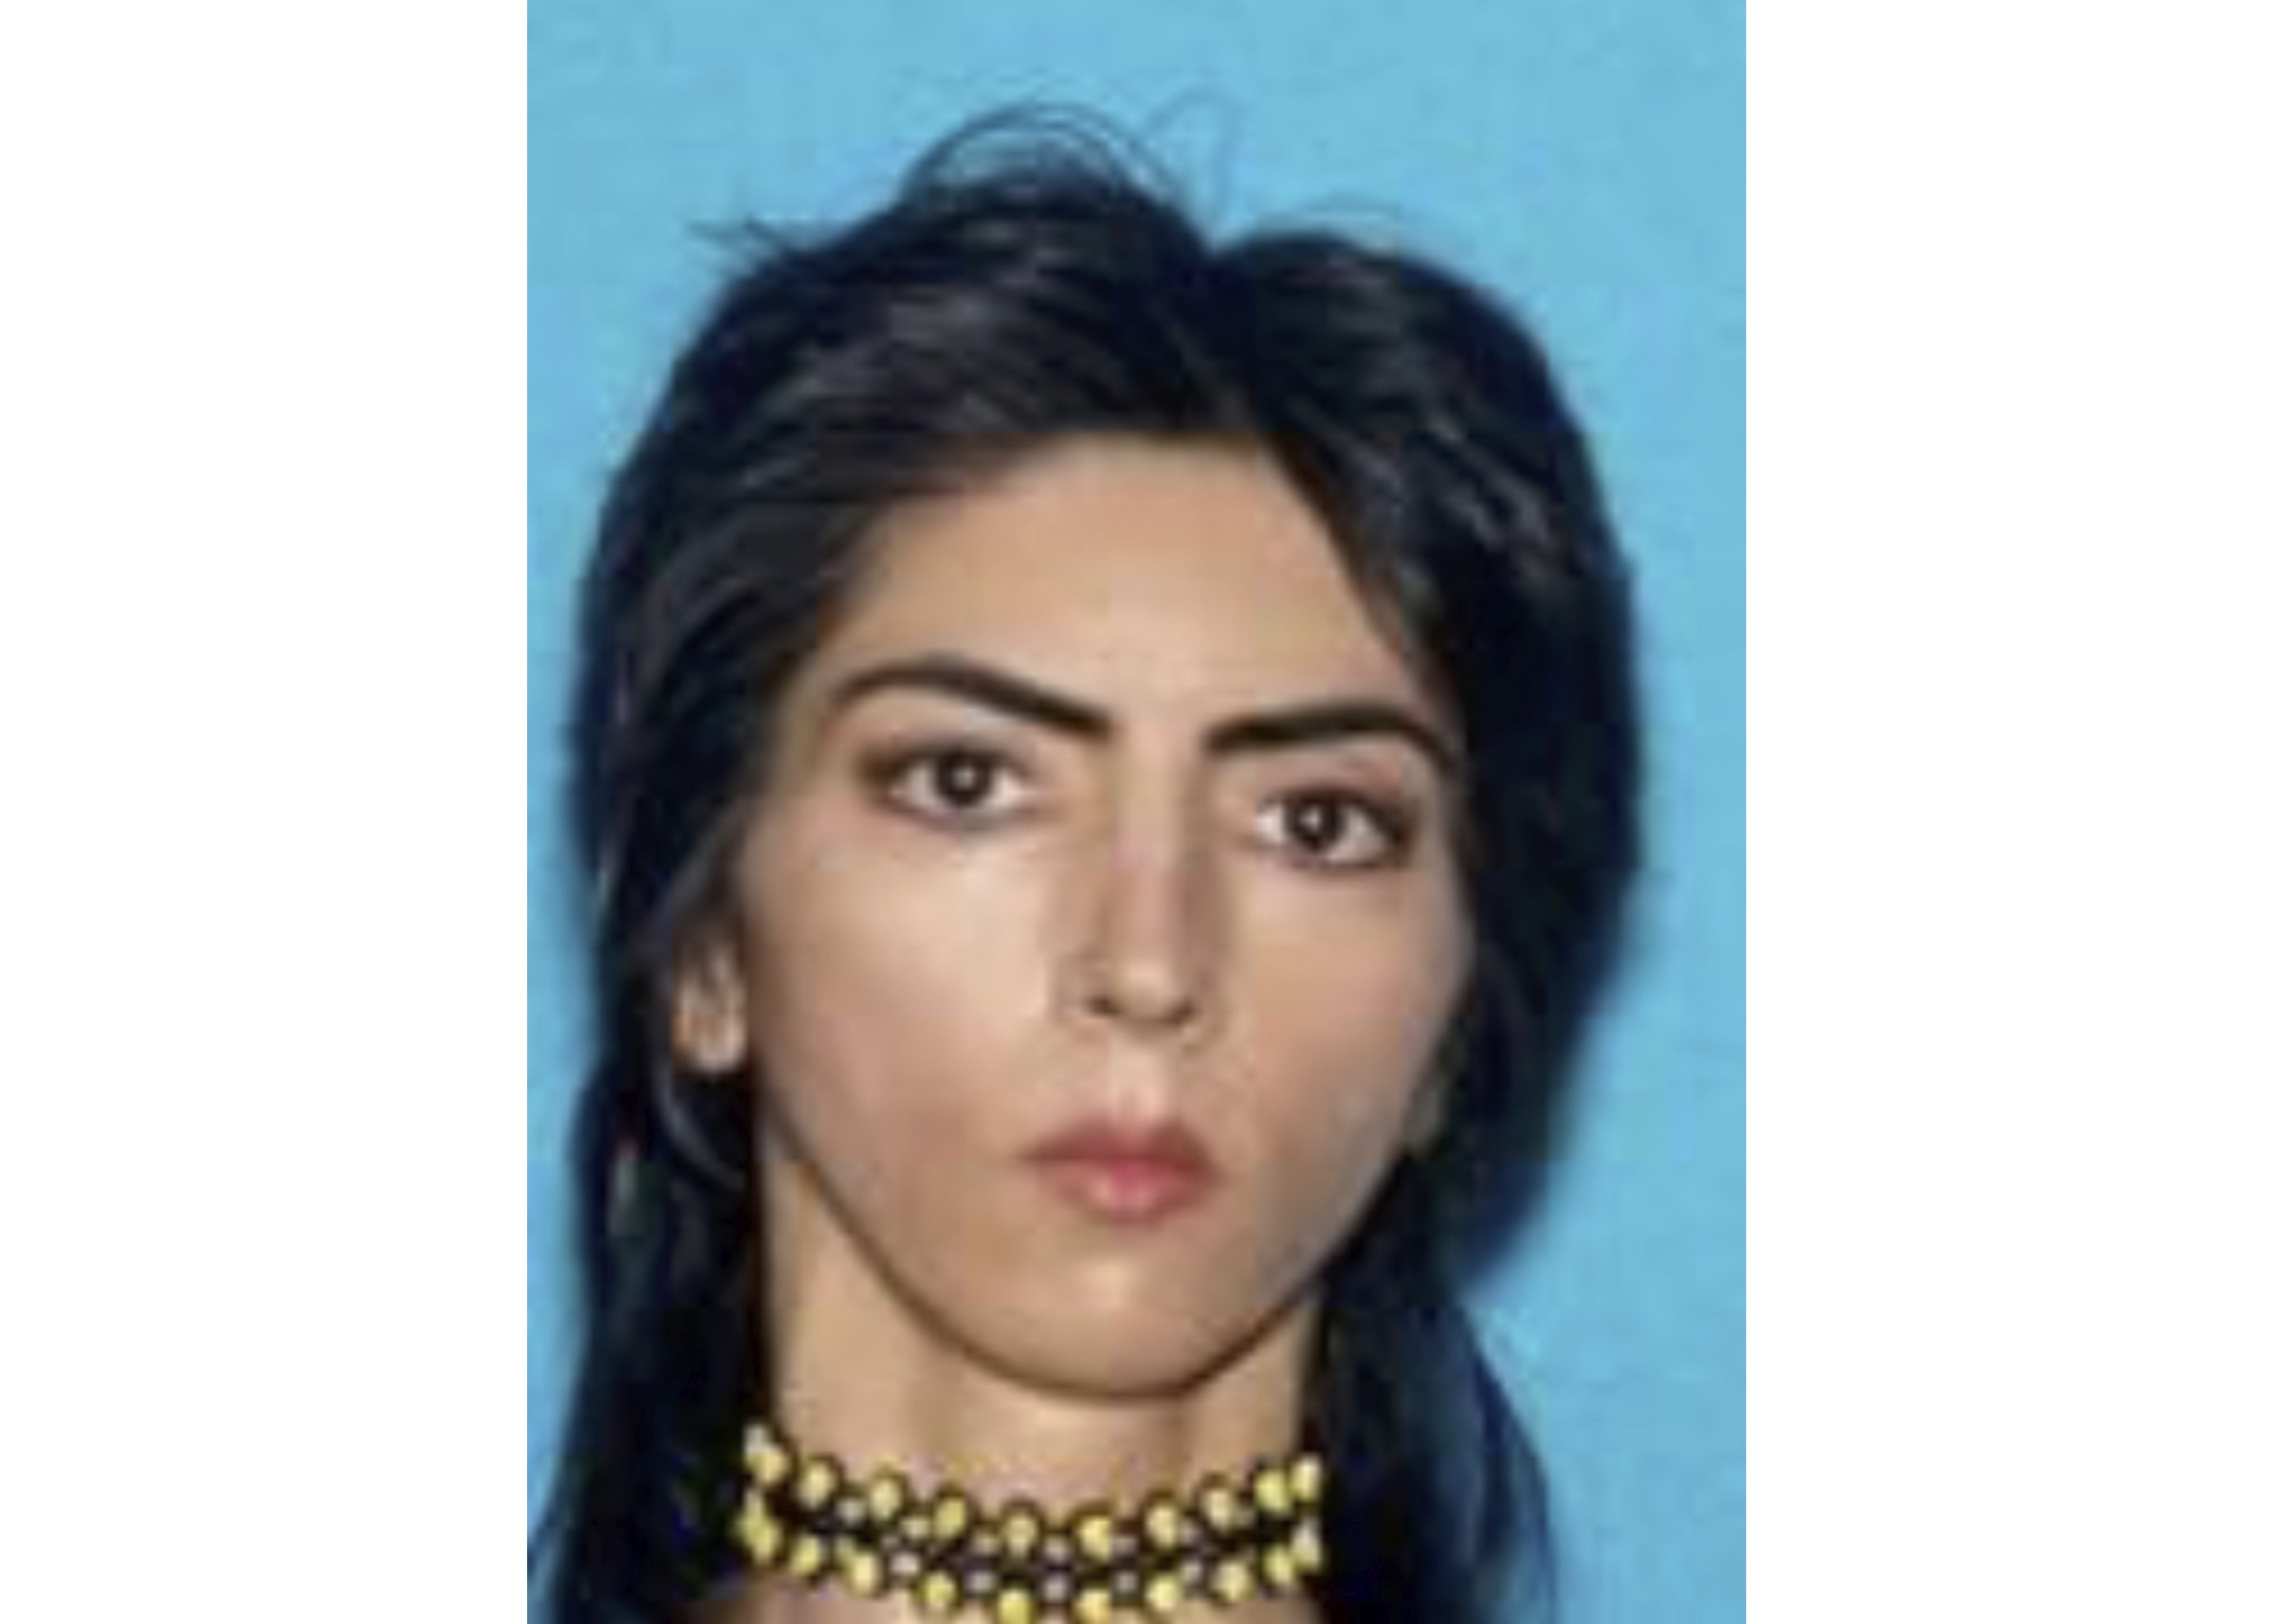 Police plan lengthy investigation of YouTube shooter's past